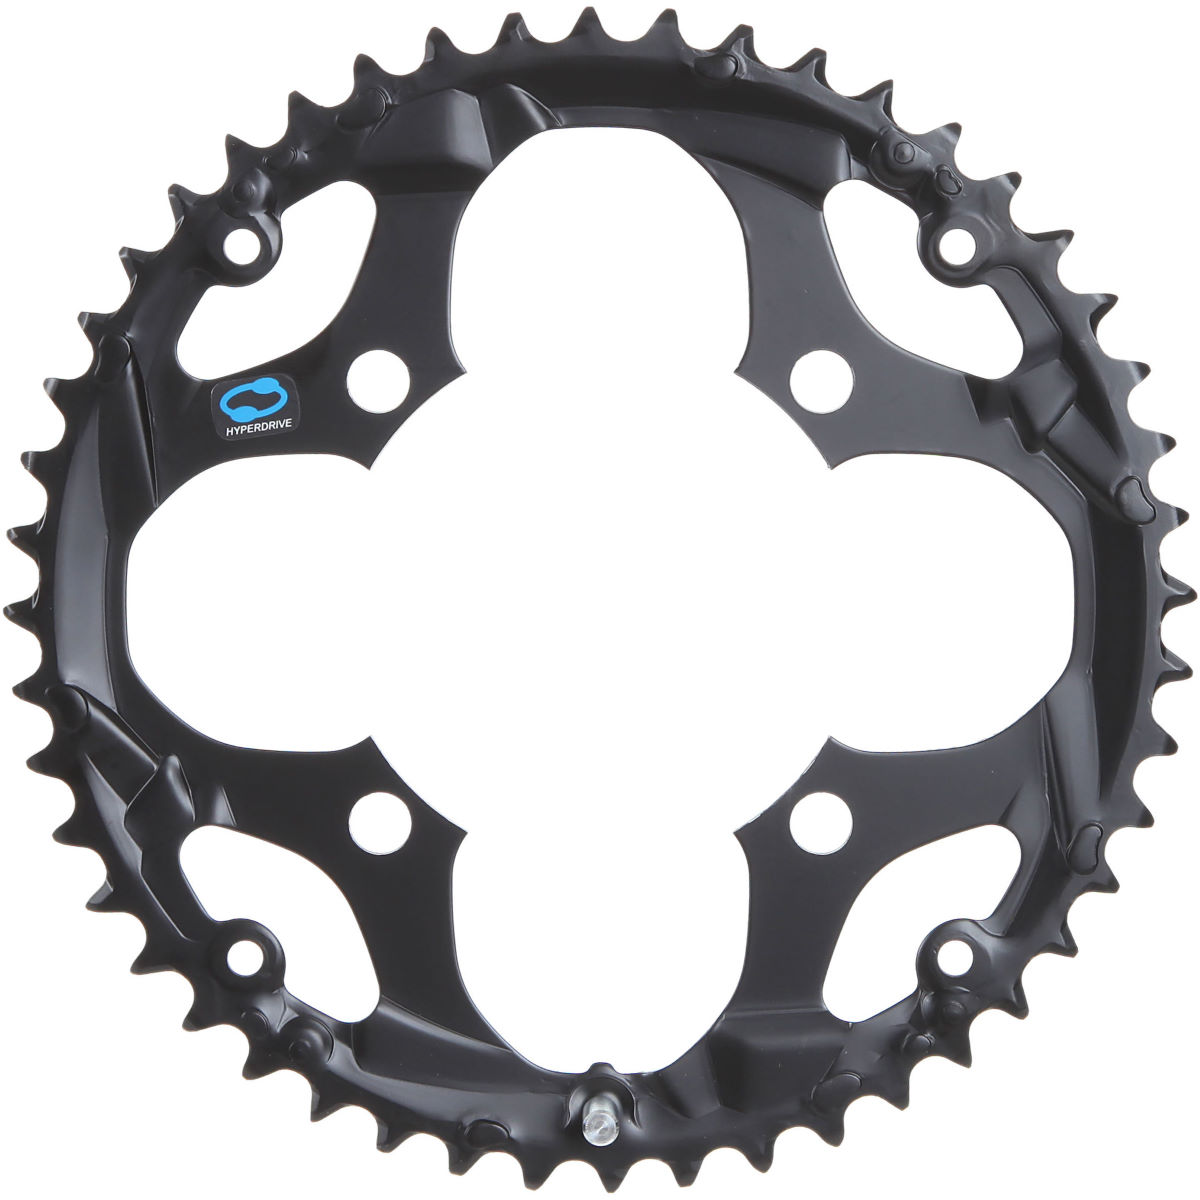 Plateau Shimano FC-M411 (noir, 48 dents) - 10 Speed 48T 104bcd Noir